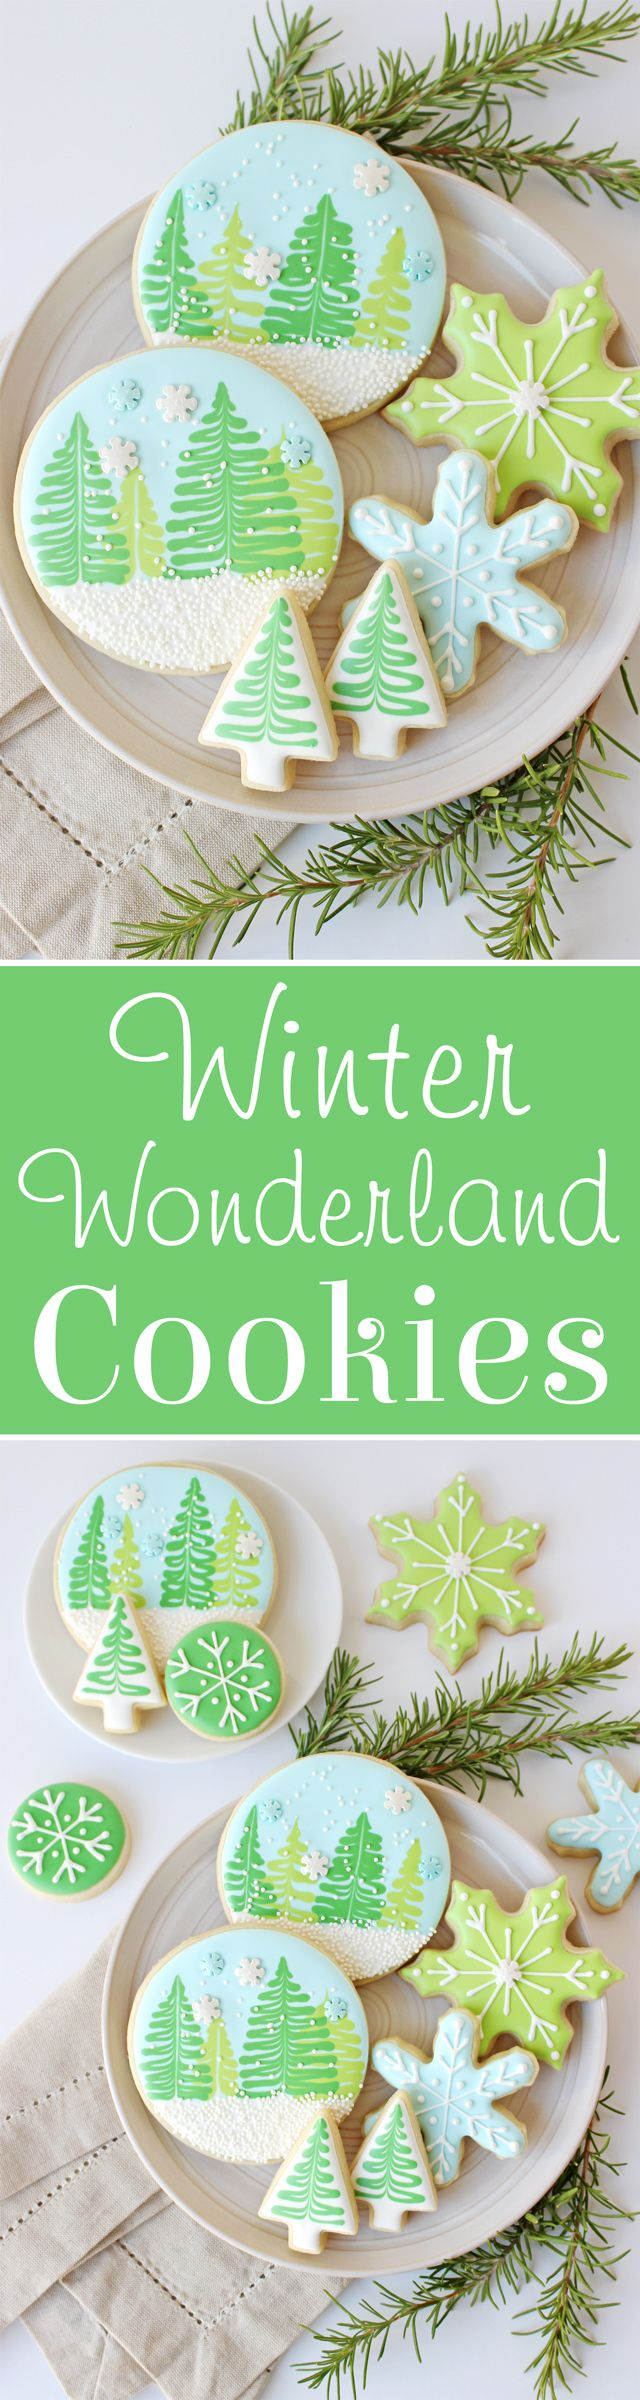 Winter Wonderland Decorated Cookies - With Video Tutorial! - #cookies #christmascookies